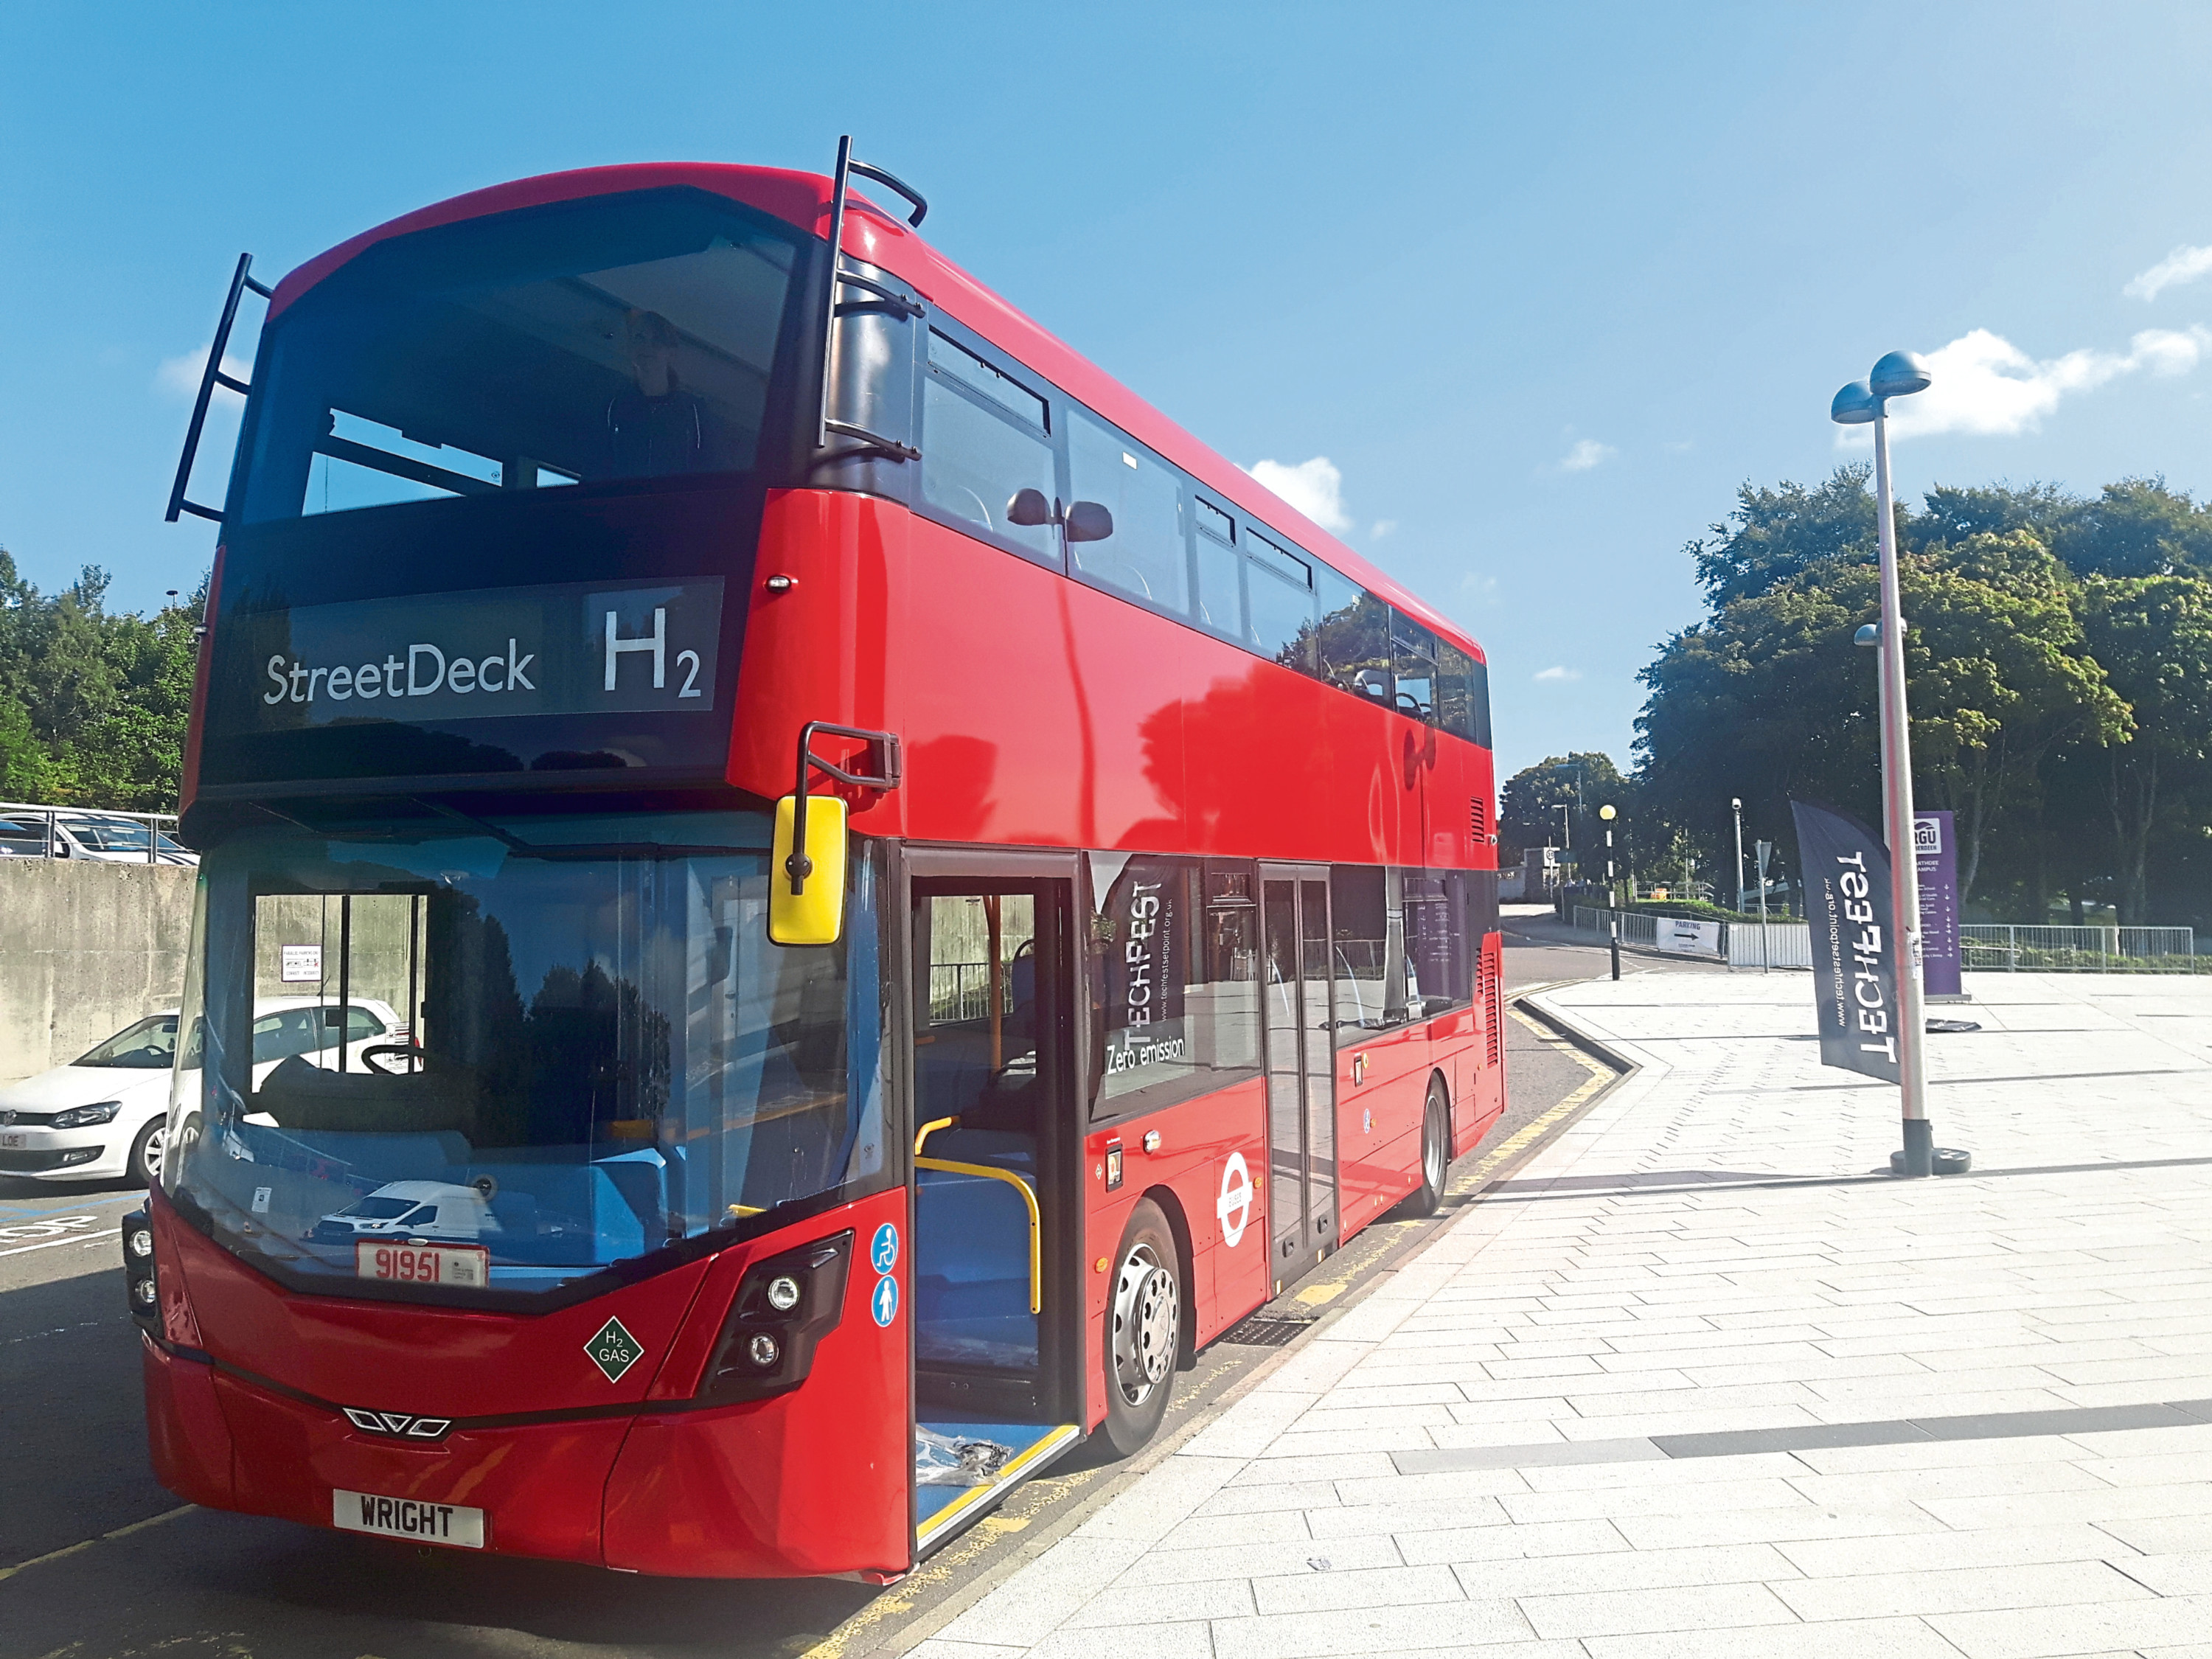 One of the new hydrogen double decker buses